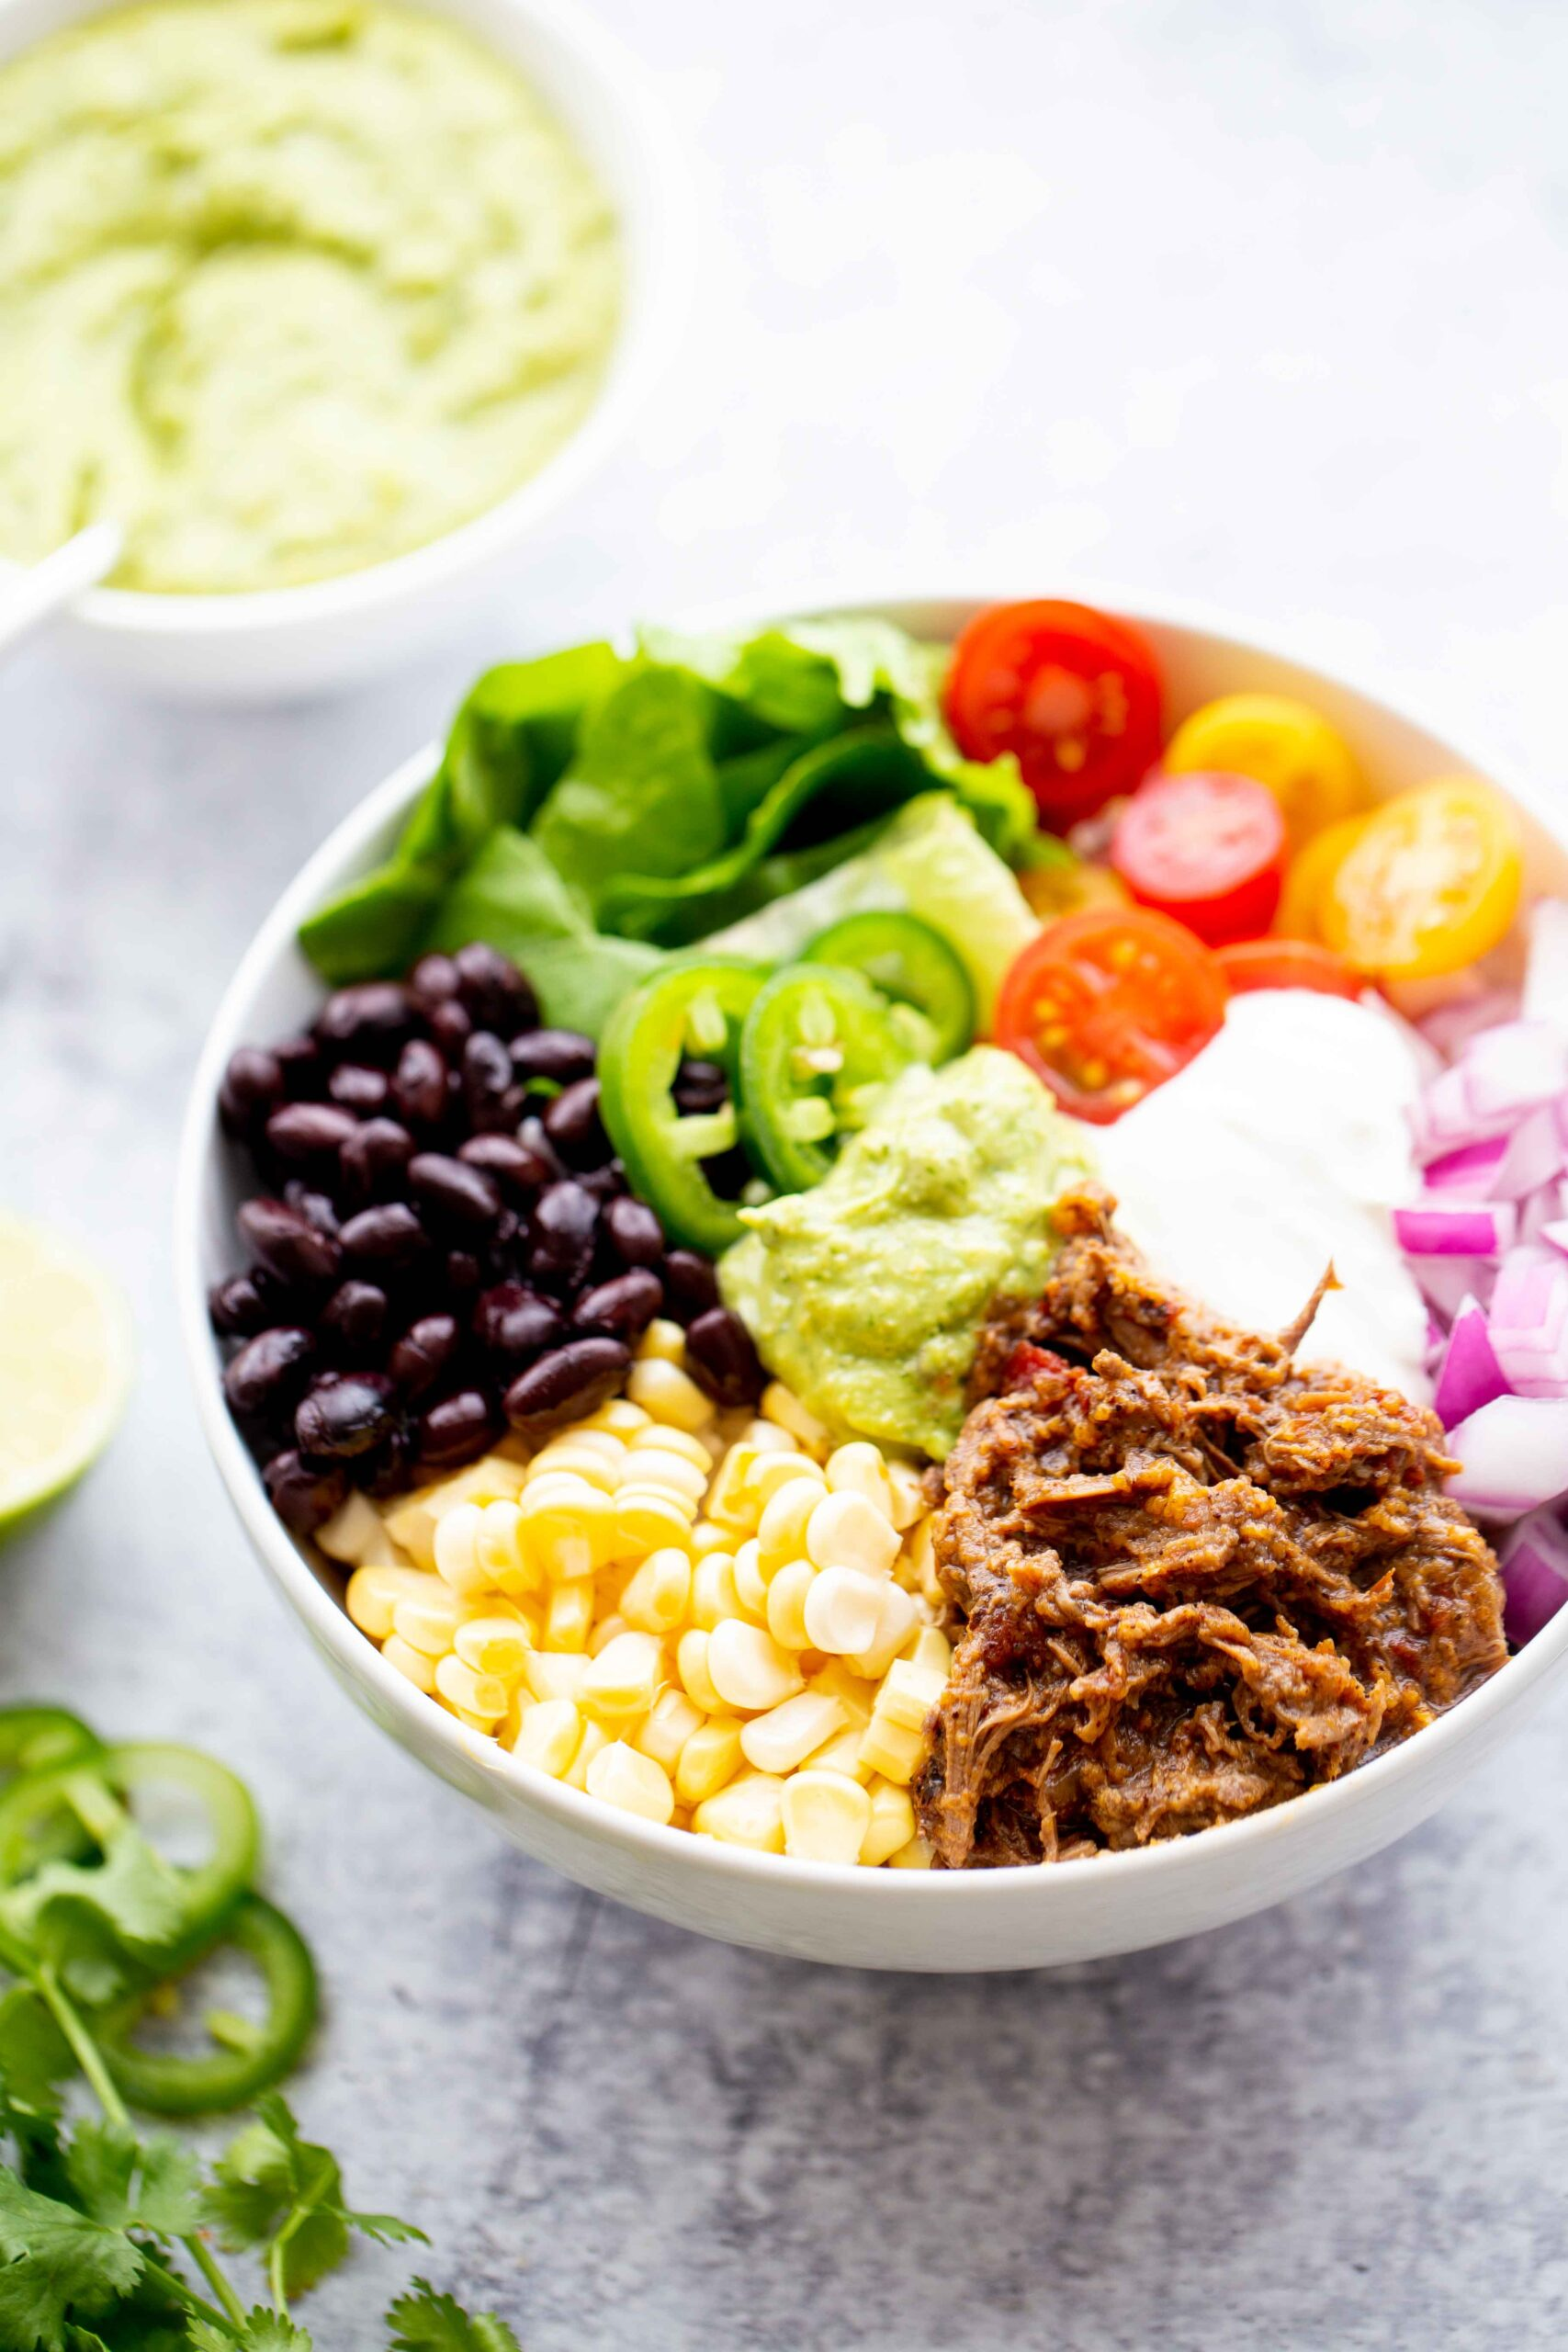 45 degree photo of a backlit burrito bowl with shredded beef corn black beans lettuce tomatoes diced red onion sour cream jalapeños and avocado sauce on a concrete background with a bowl of avocado sauce in the background